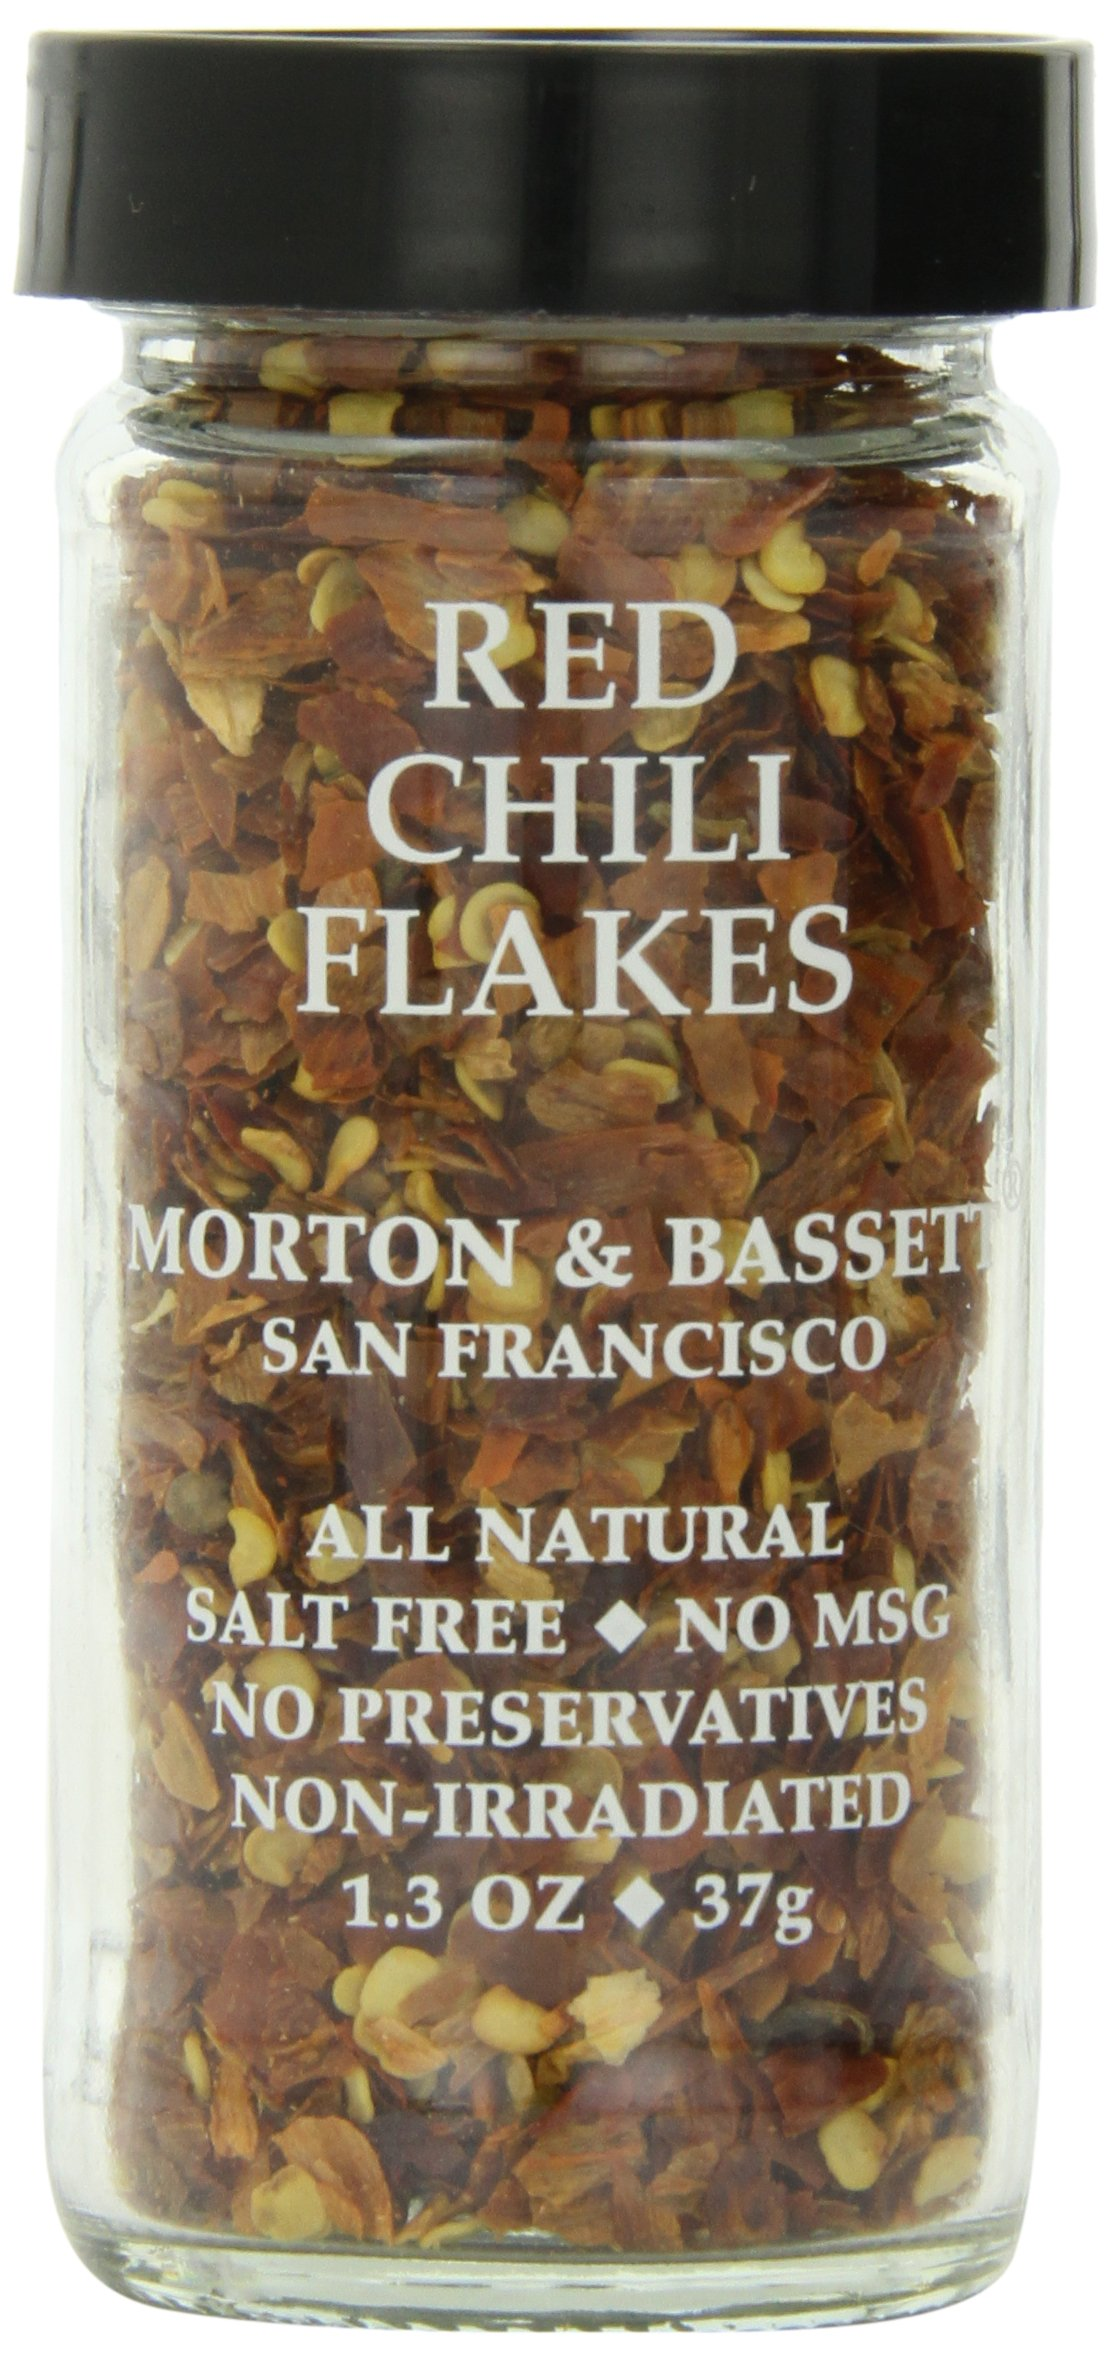 Morton & Bassett Red Chili Flakes, 1.3-Ounce Jars (Pack of 3) by Morton & Bassett